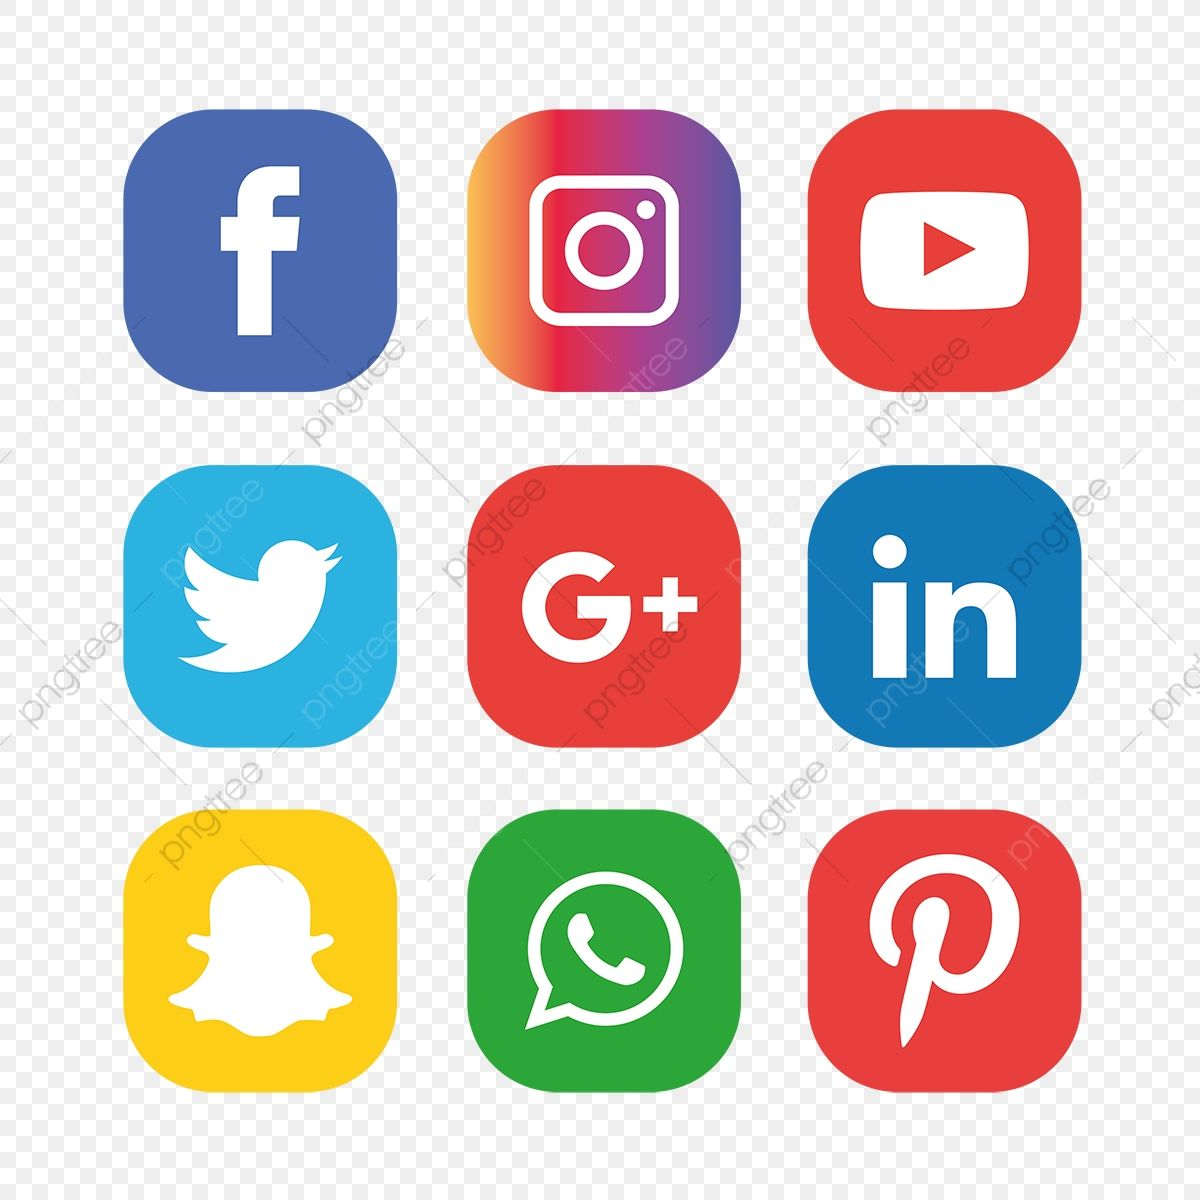 Social Media Icons Set Social Media Clipart Social Icons Media Icons Png And Vector With Transparent Background For Free Download Social Media Icons Media Icon Social Media Logos